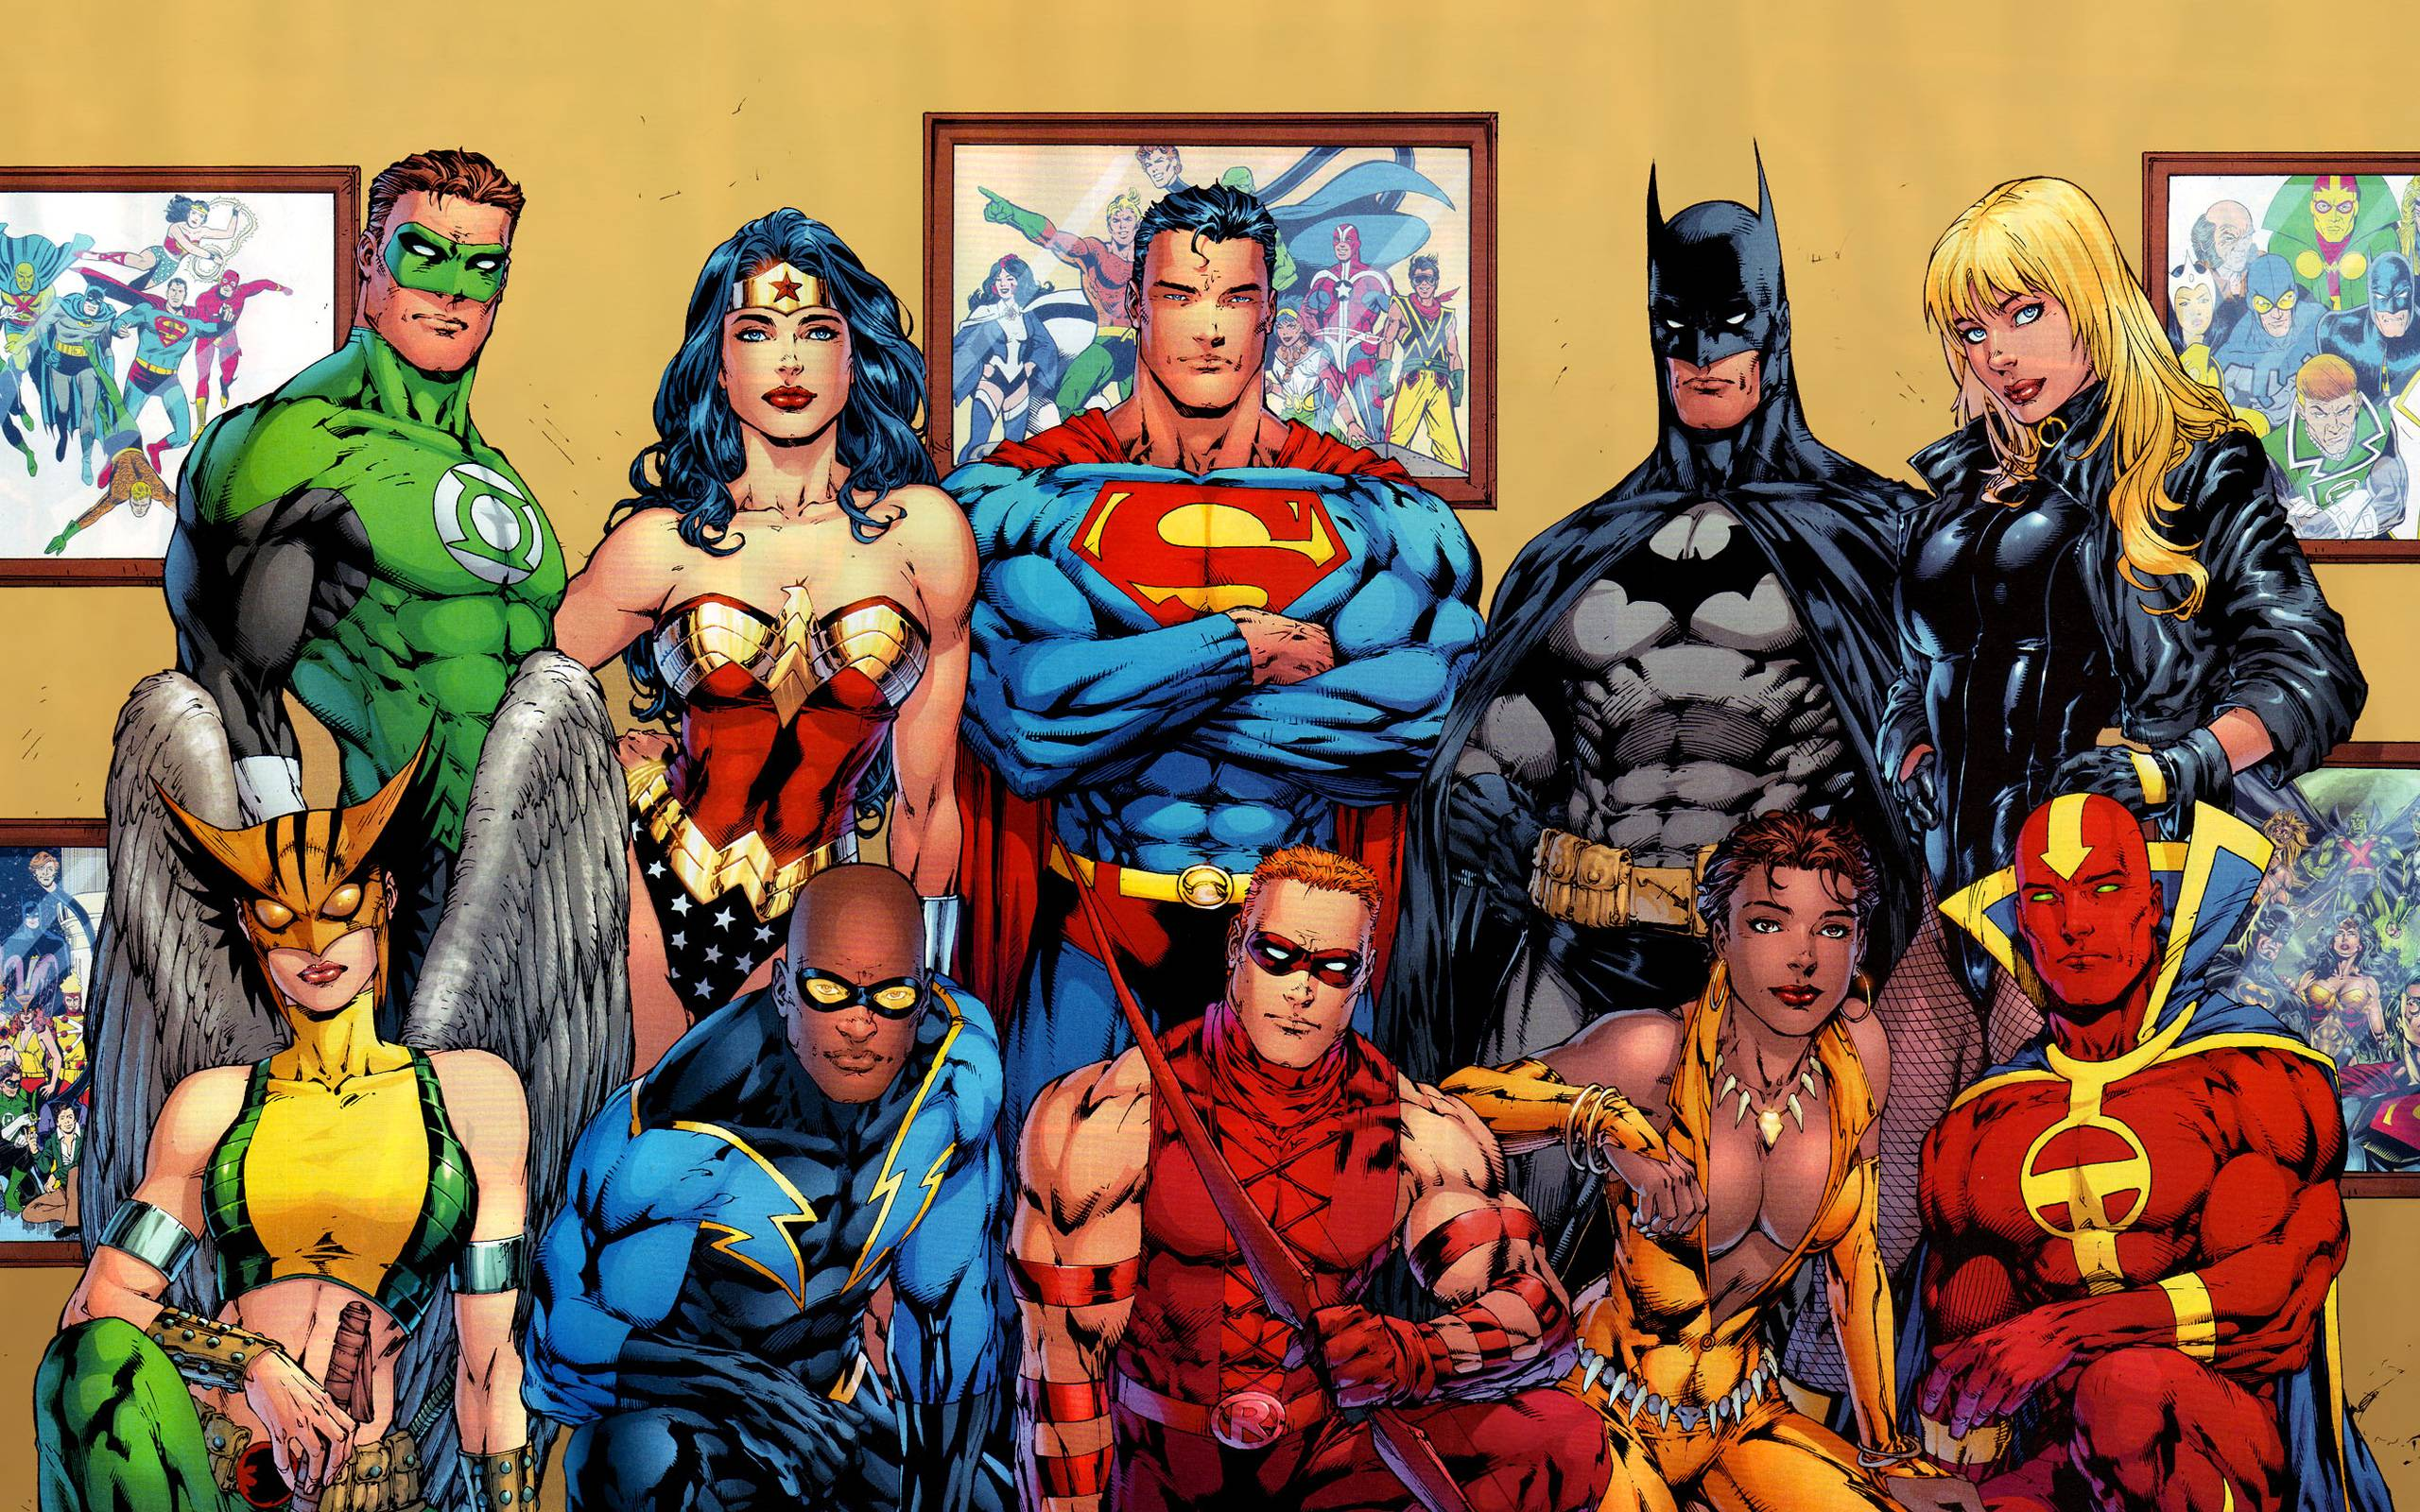 Batman Wonder Woman Green Lantern Flash And Arrow To Mention A Few Amazing Art Work By Alex Ross Some The Late Michael Turner